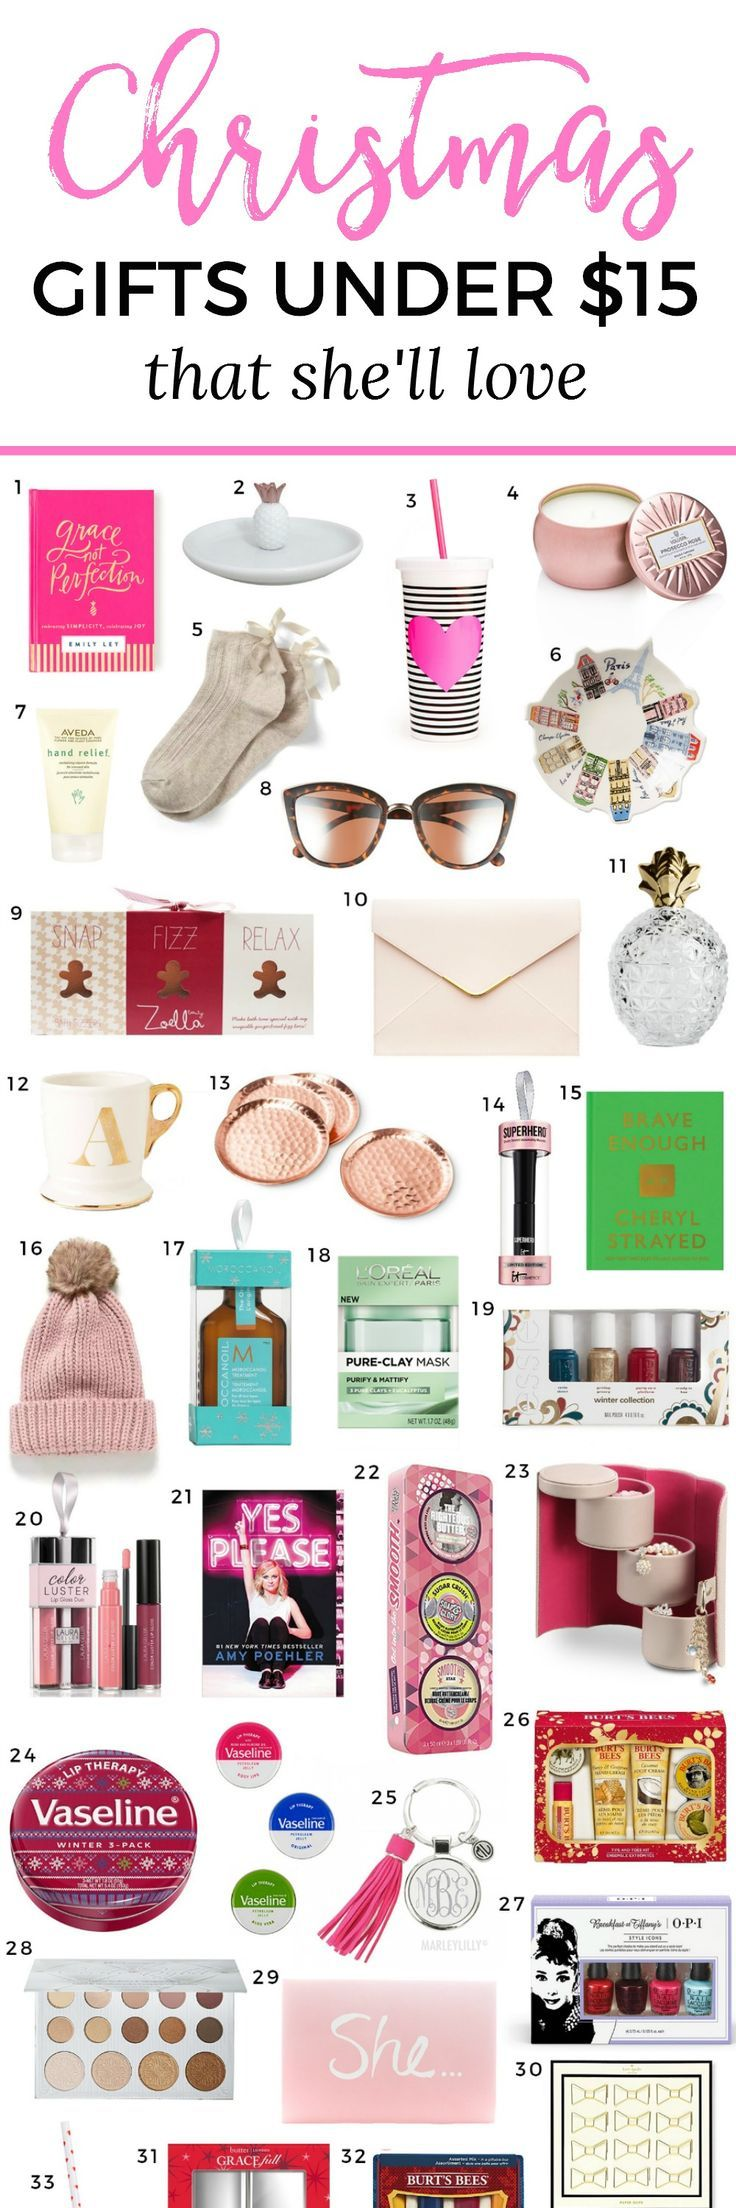 451 best christmas ideas images on Pinterest | Merry christmas ...